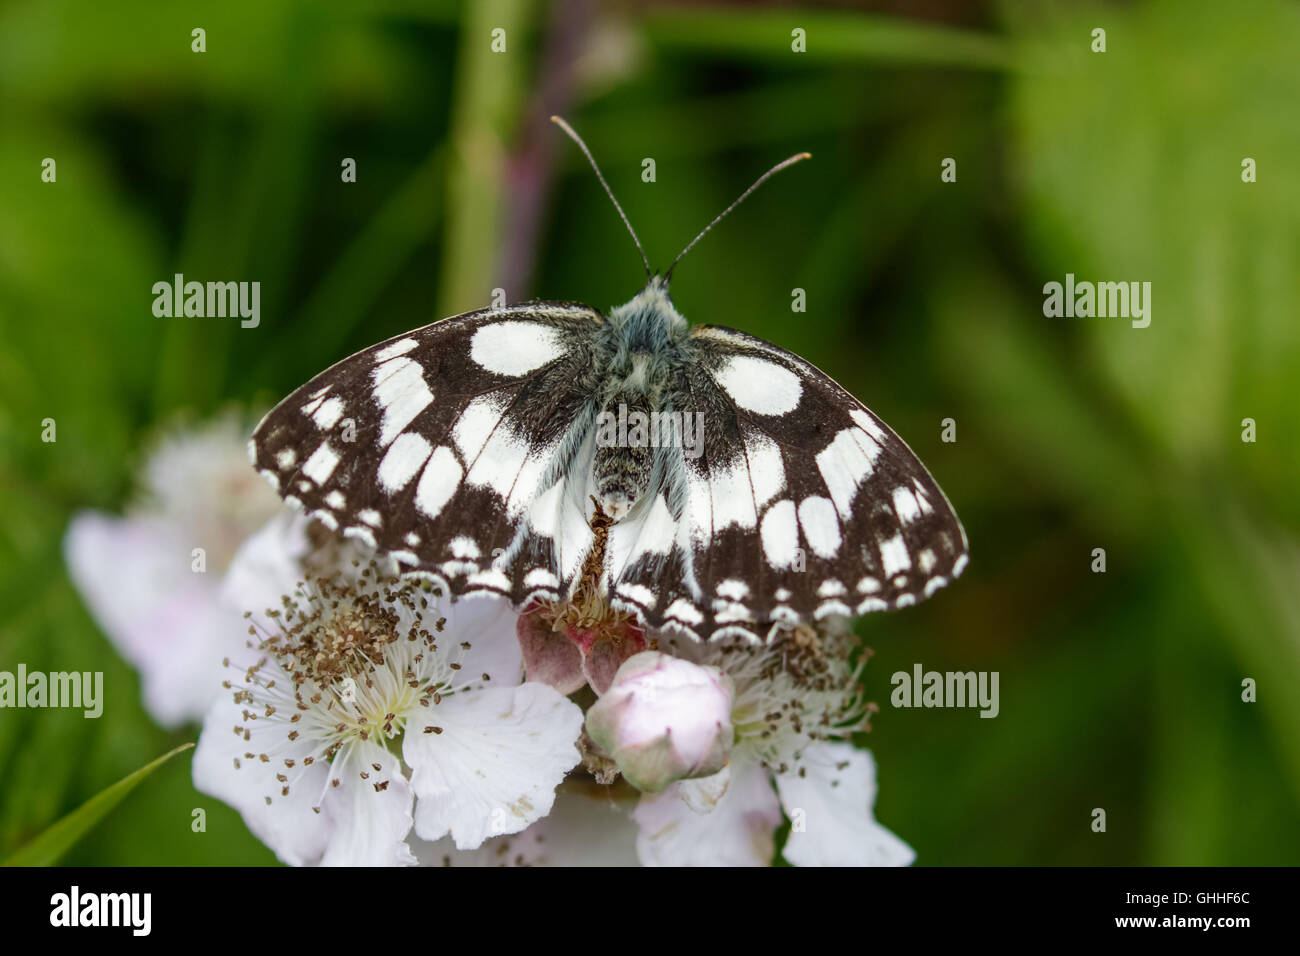 Top view of a Marbled White butterfly (Melanargia galathea) on pink flower. - Stock Image